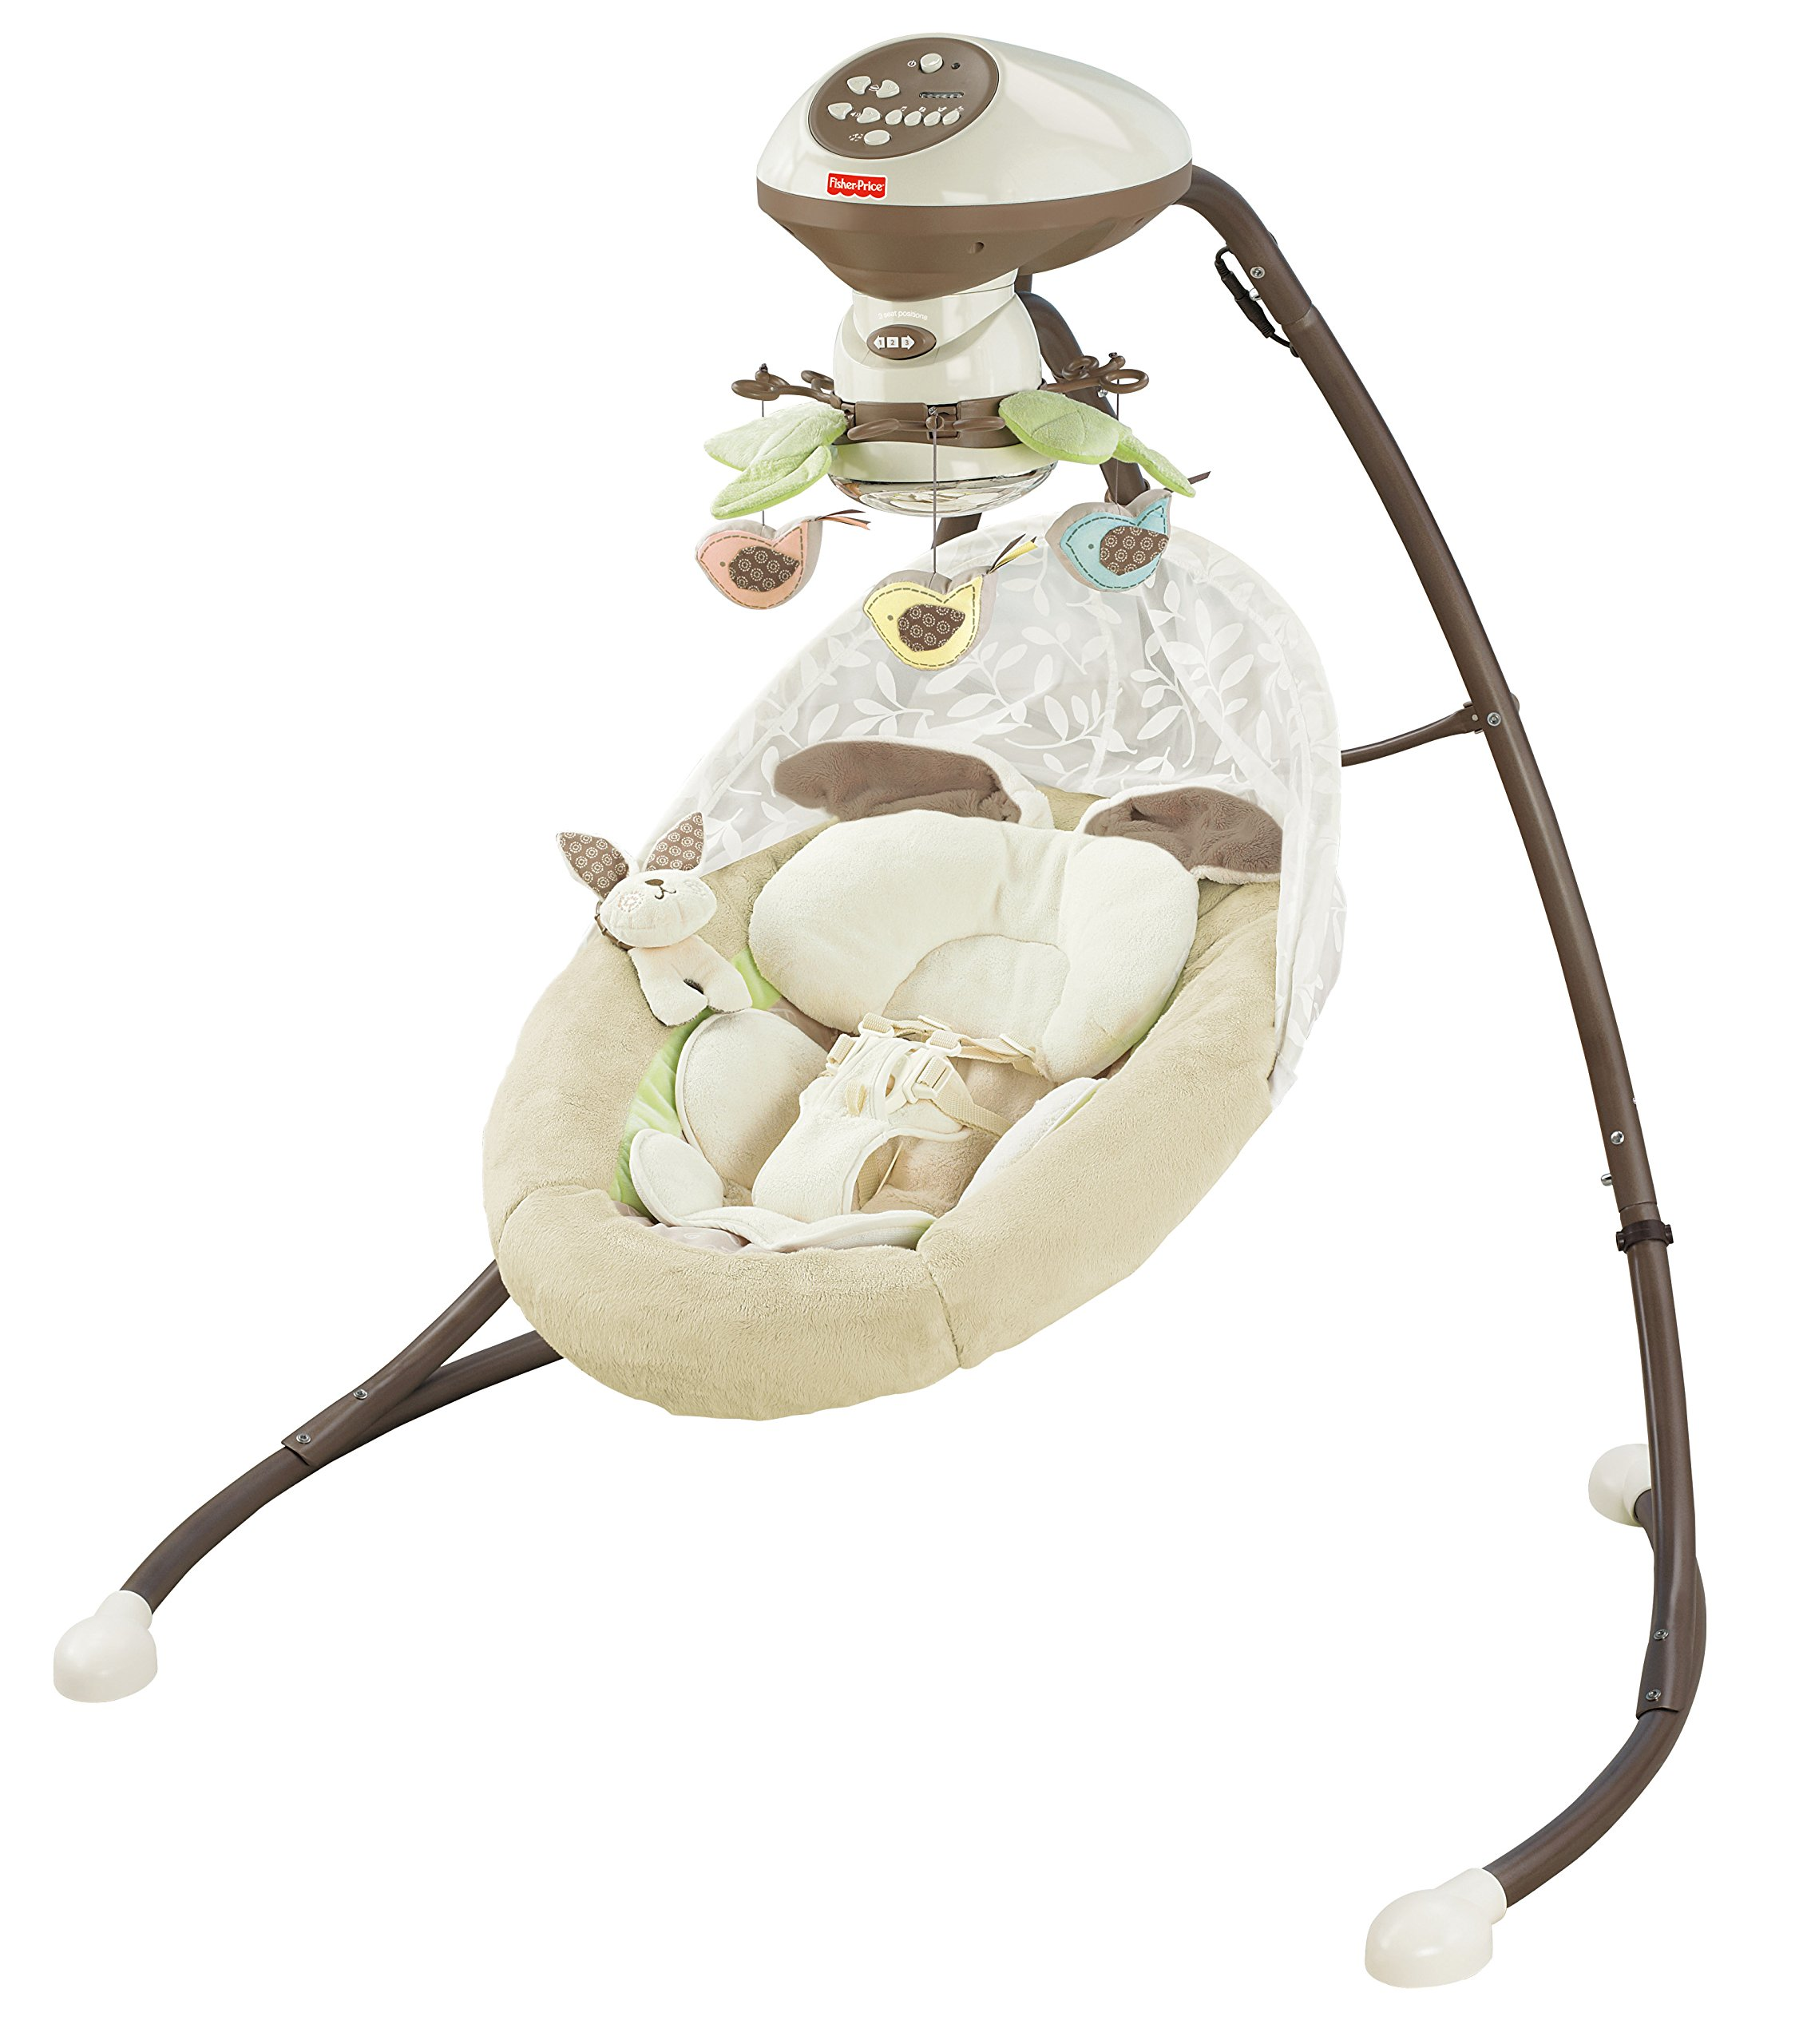 Fisher-Price Snugabunny Cradle 'n Swing with Smart Swing Technology by Fisher-Price (Image #10)